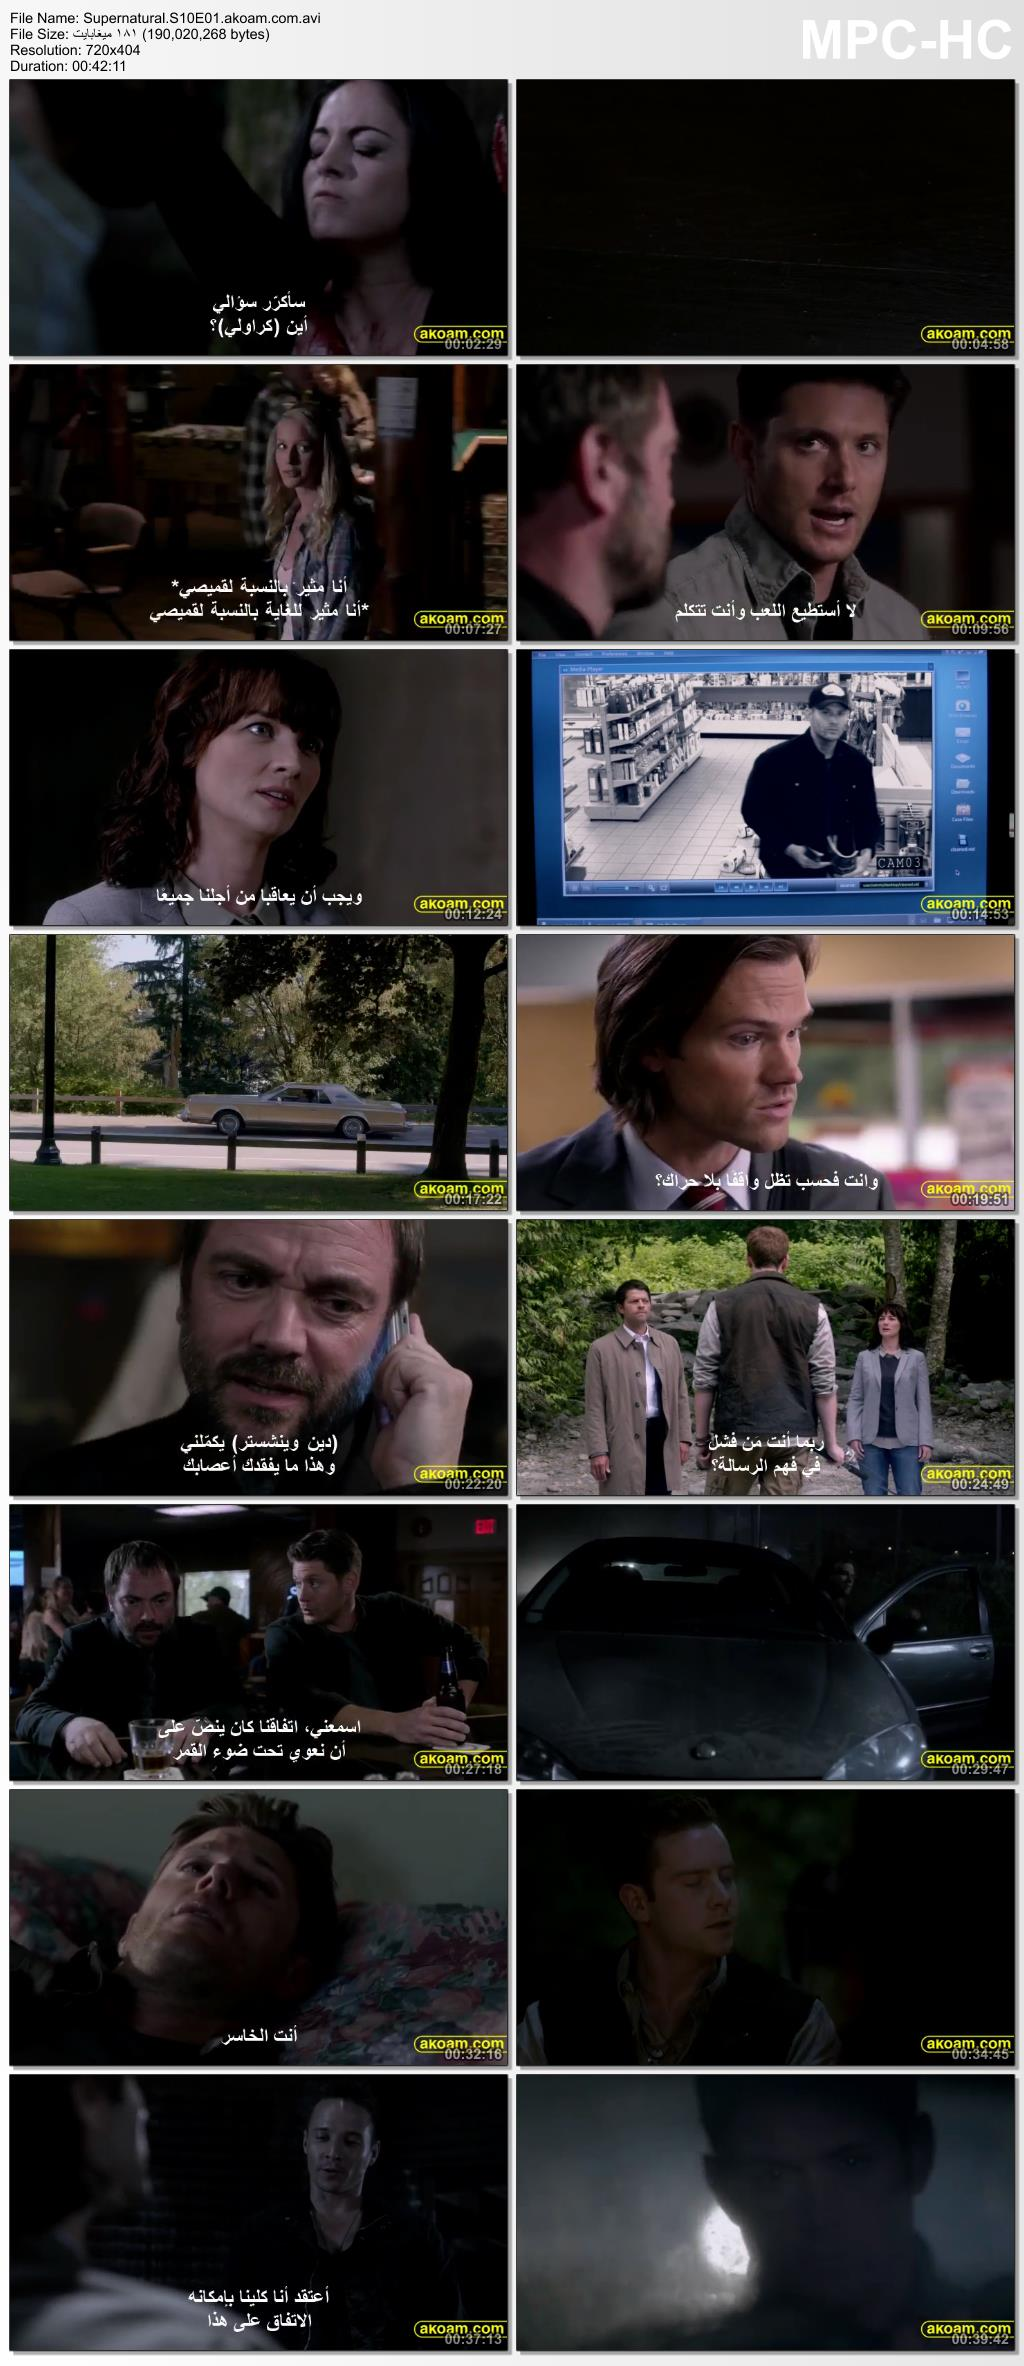 الرعب,الفانتازيا,Supernatural,Supernatural season 10